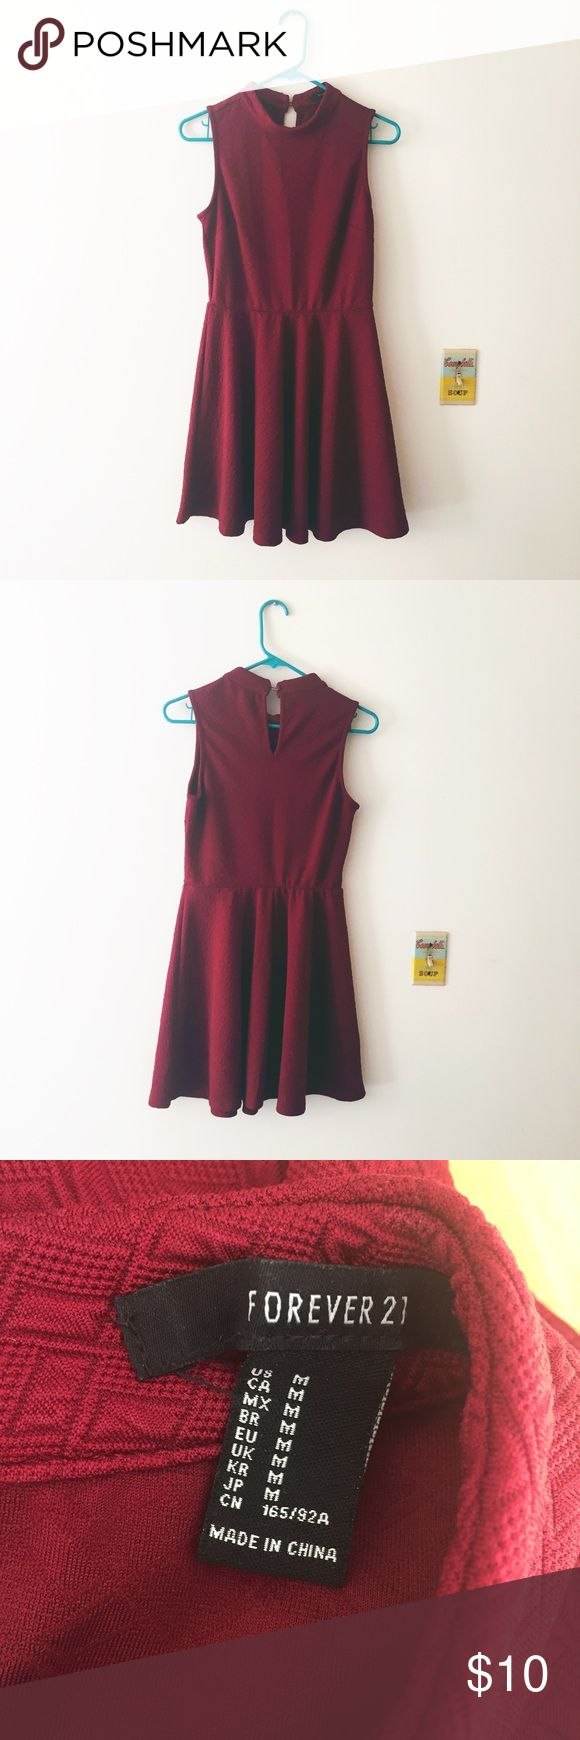 Forever 21 red high collar dress Forever 21 red high collar dress. Only used once Forever 21 Dresses Midi